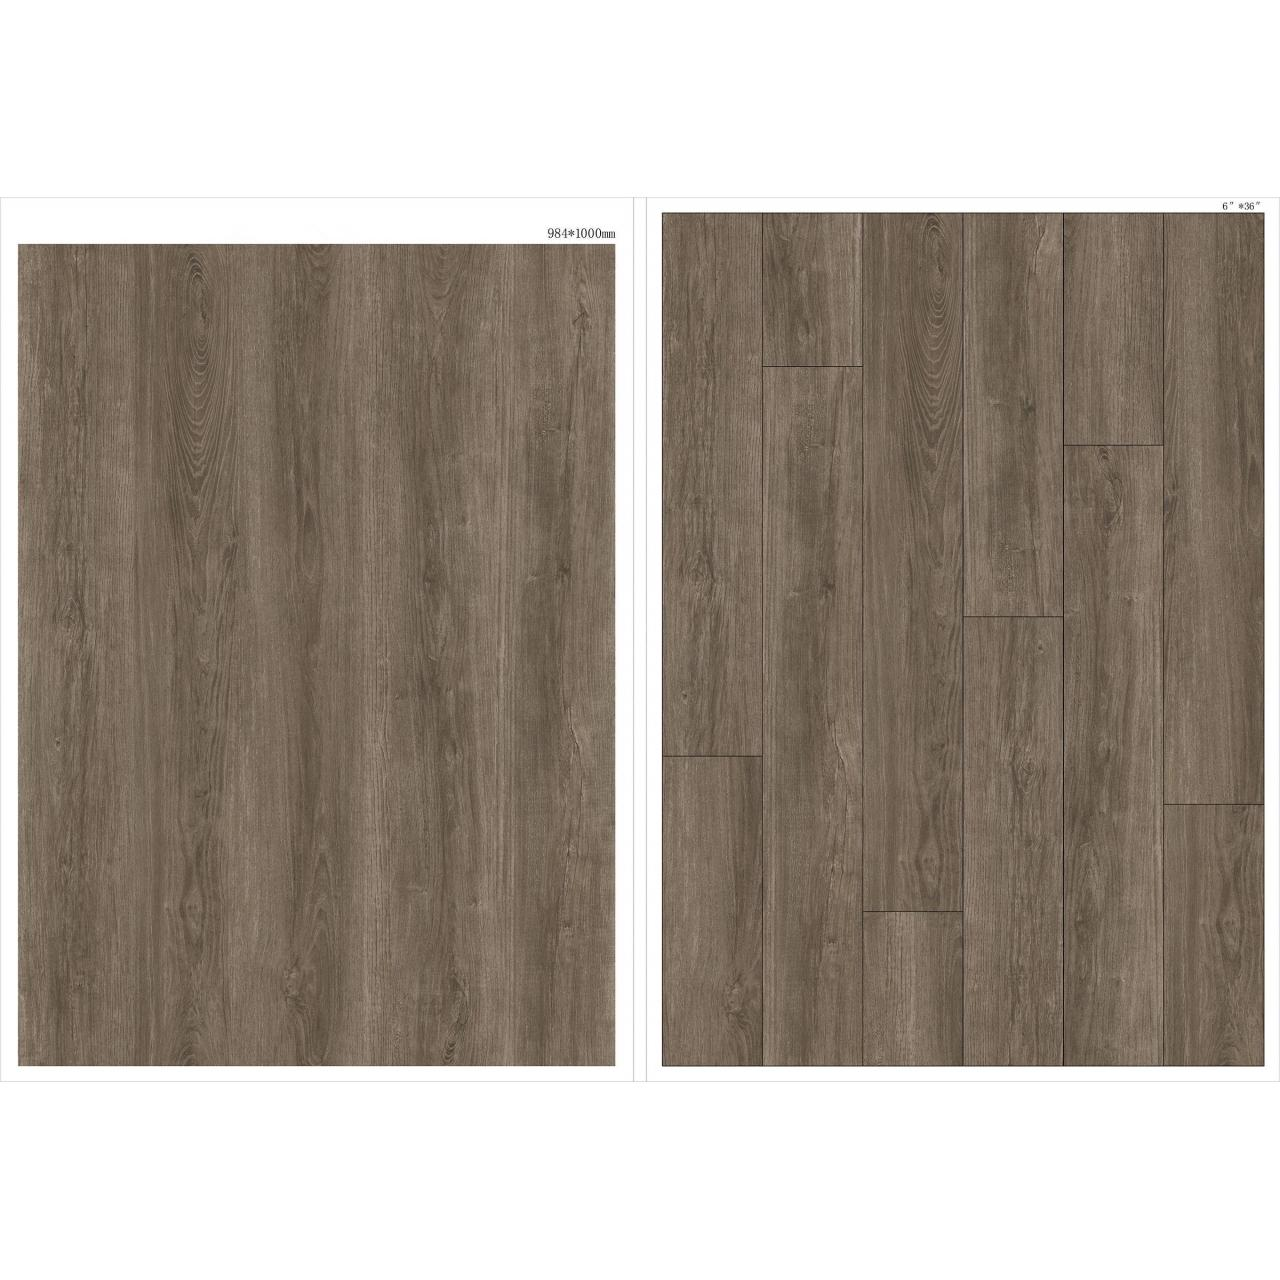 Buy EVC Flooring at wholesale prices